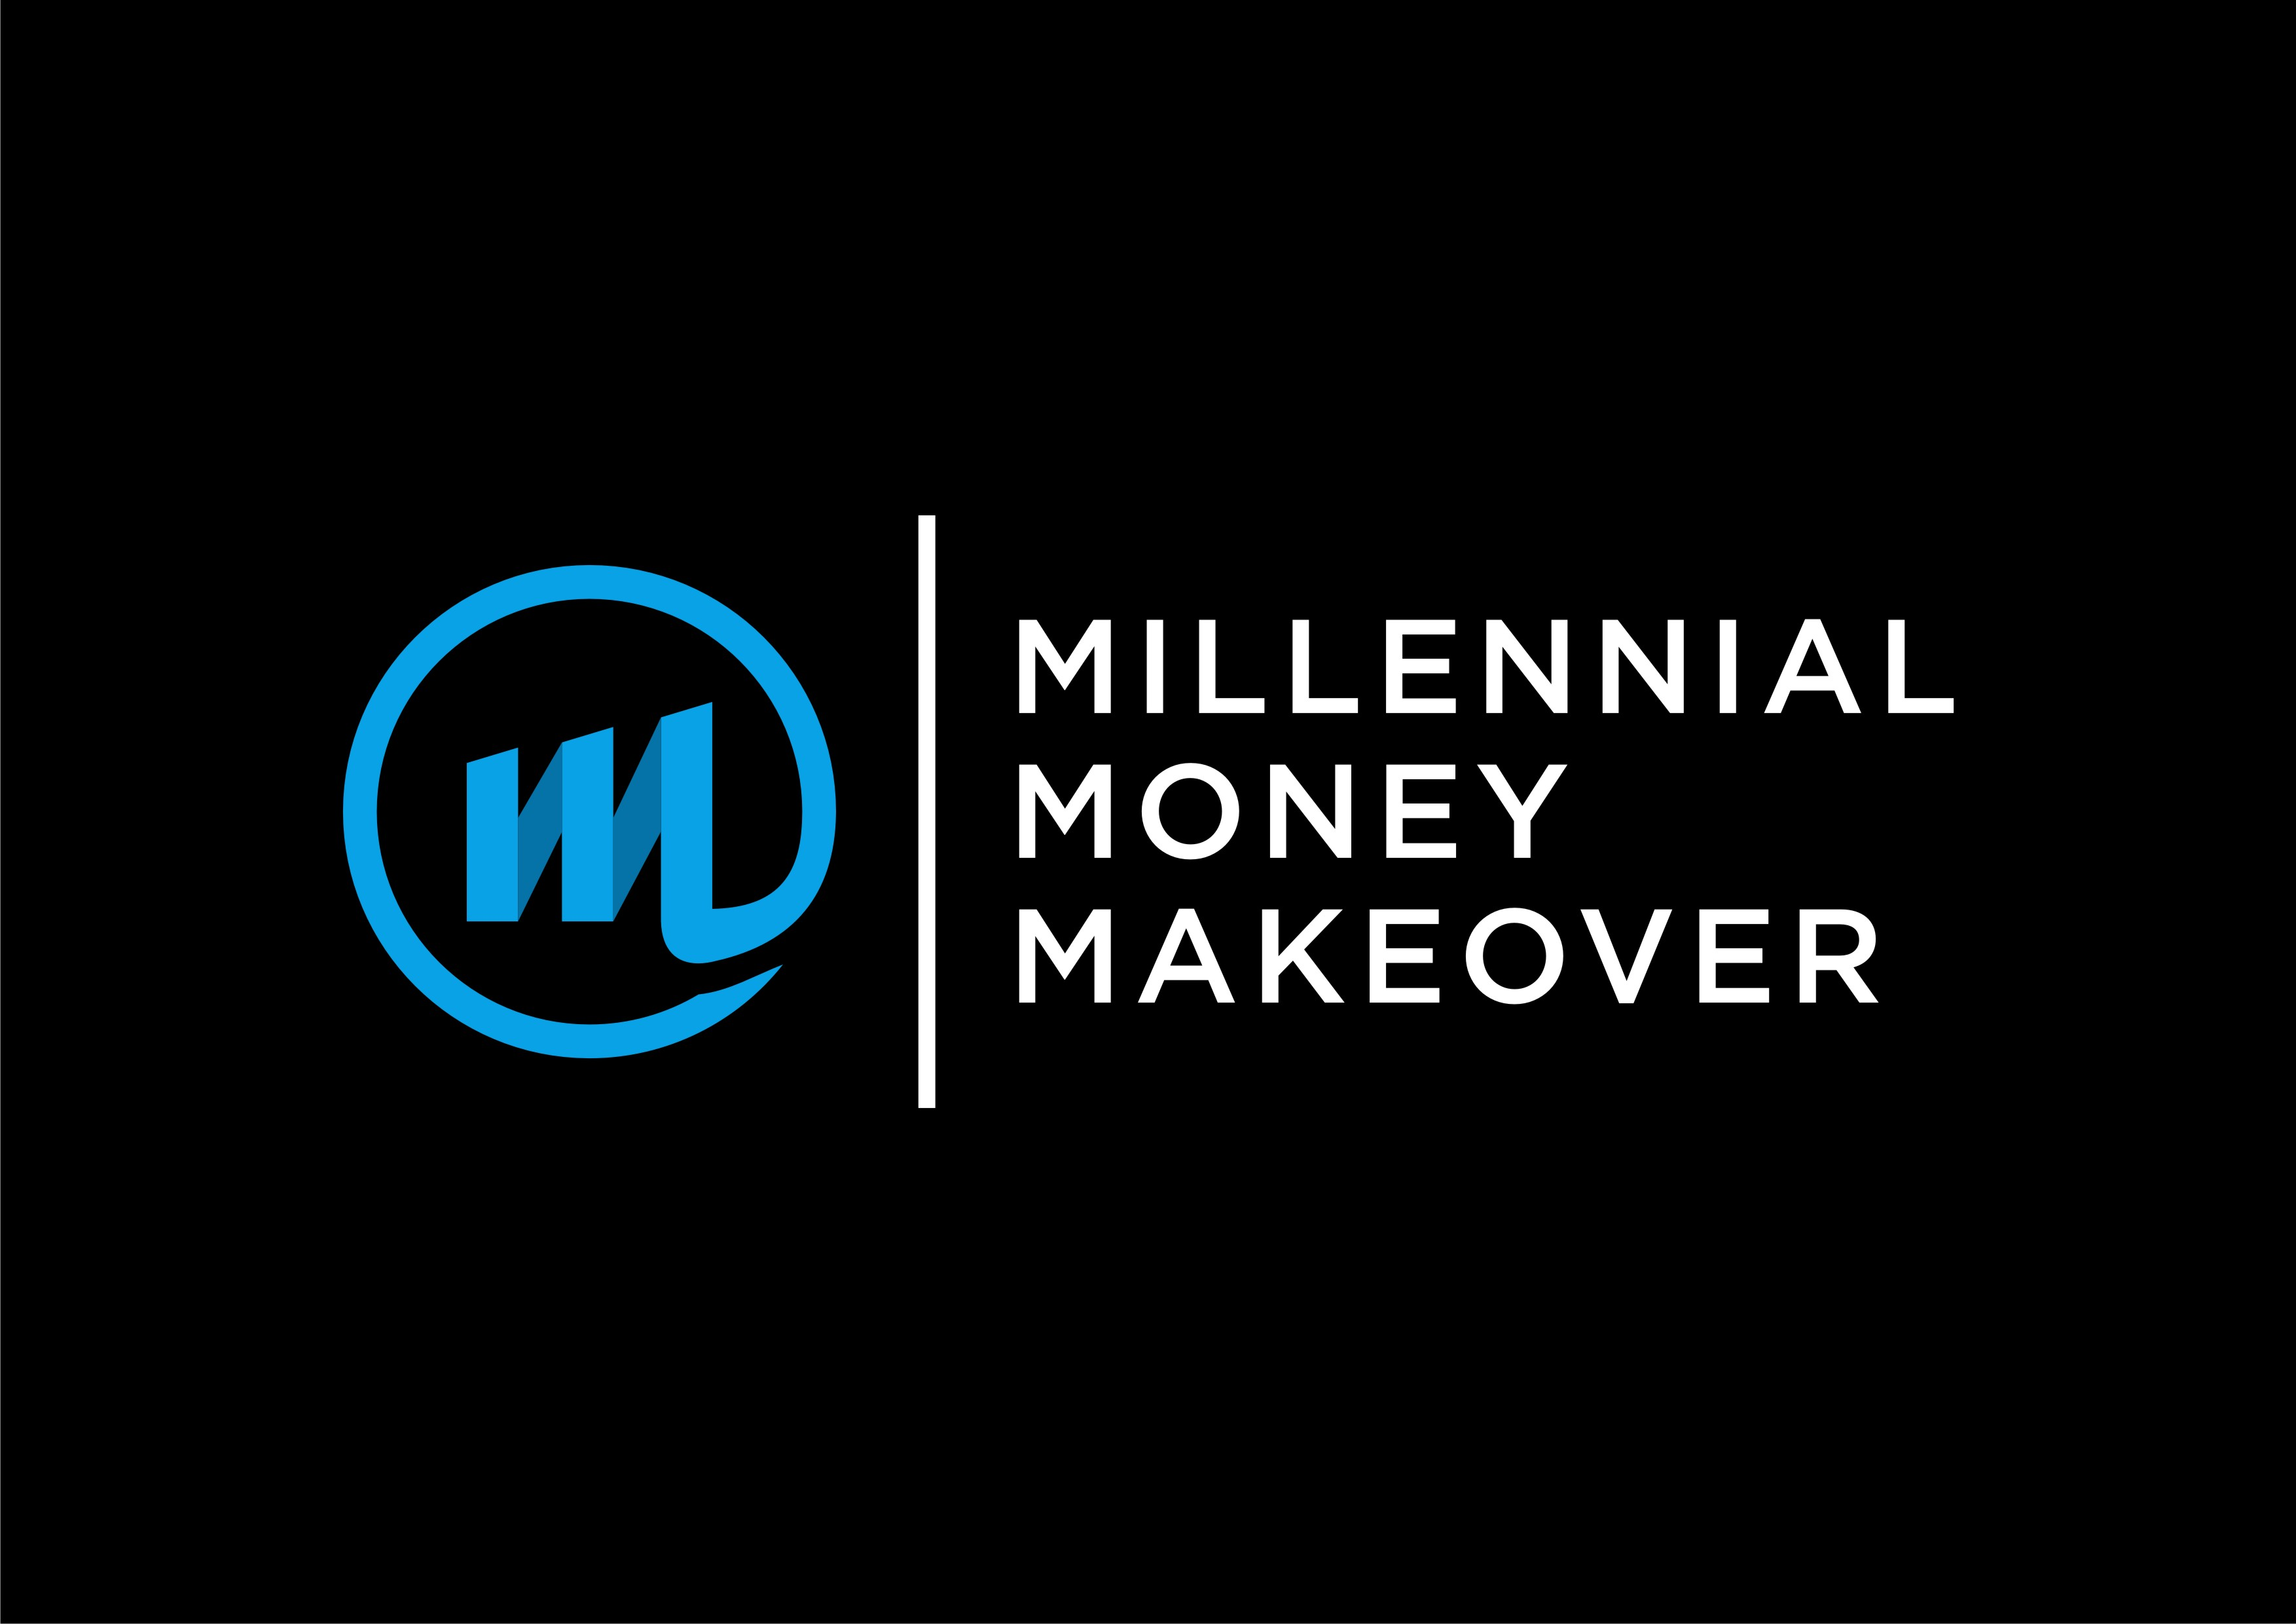 Millennial Money Makeover Company Logo